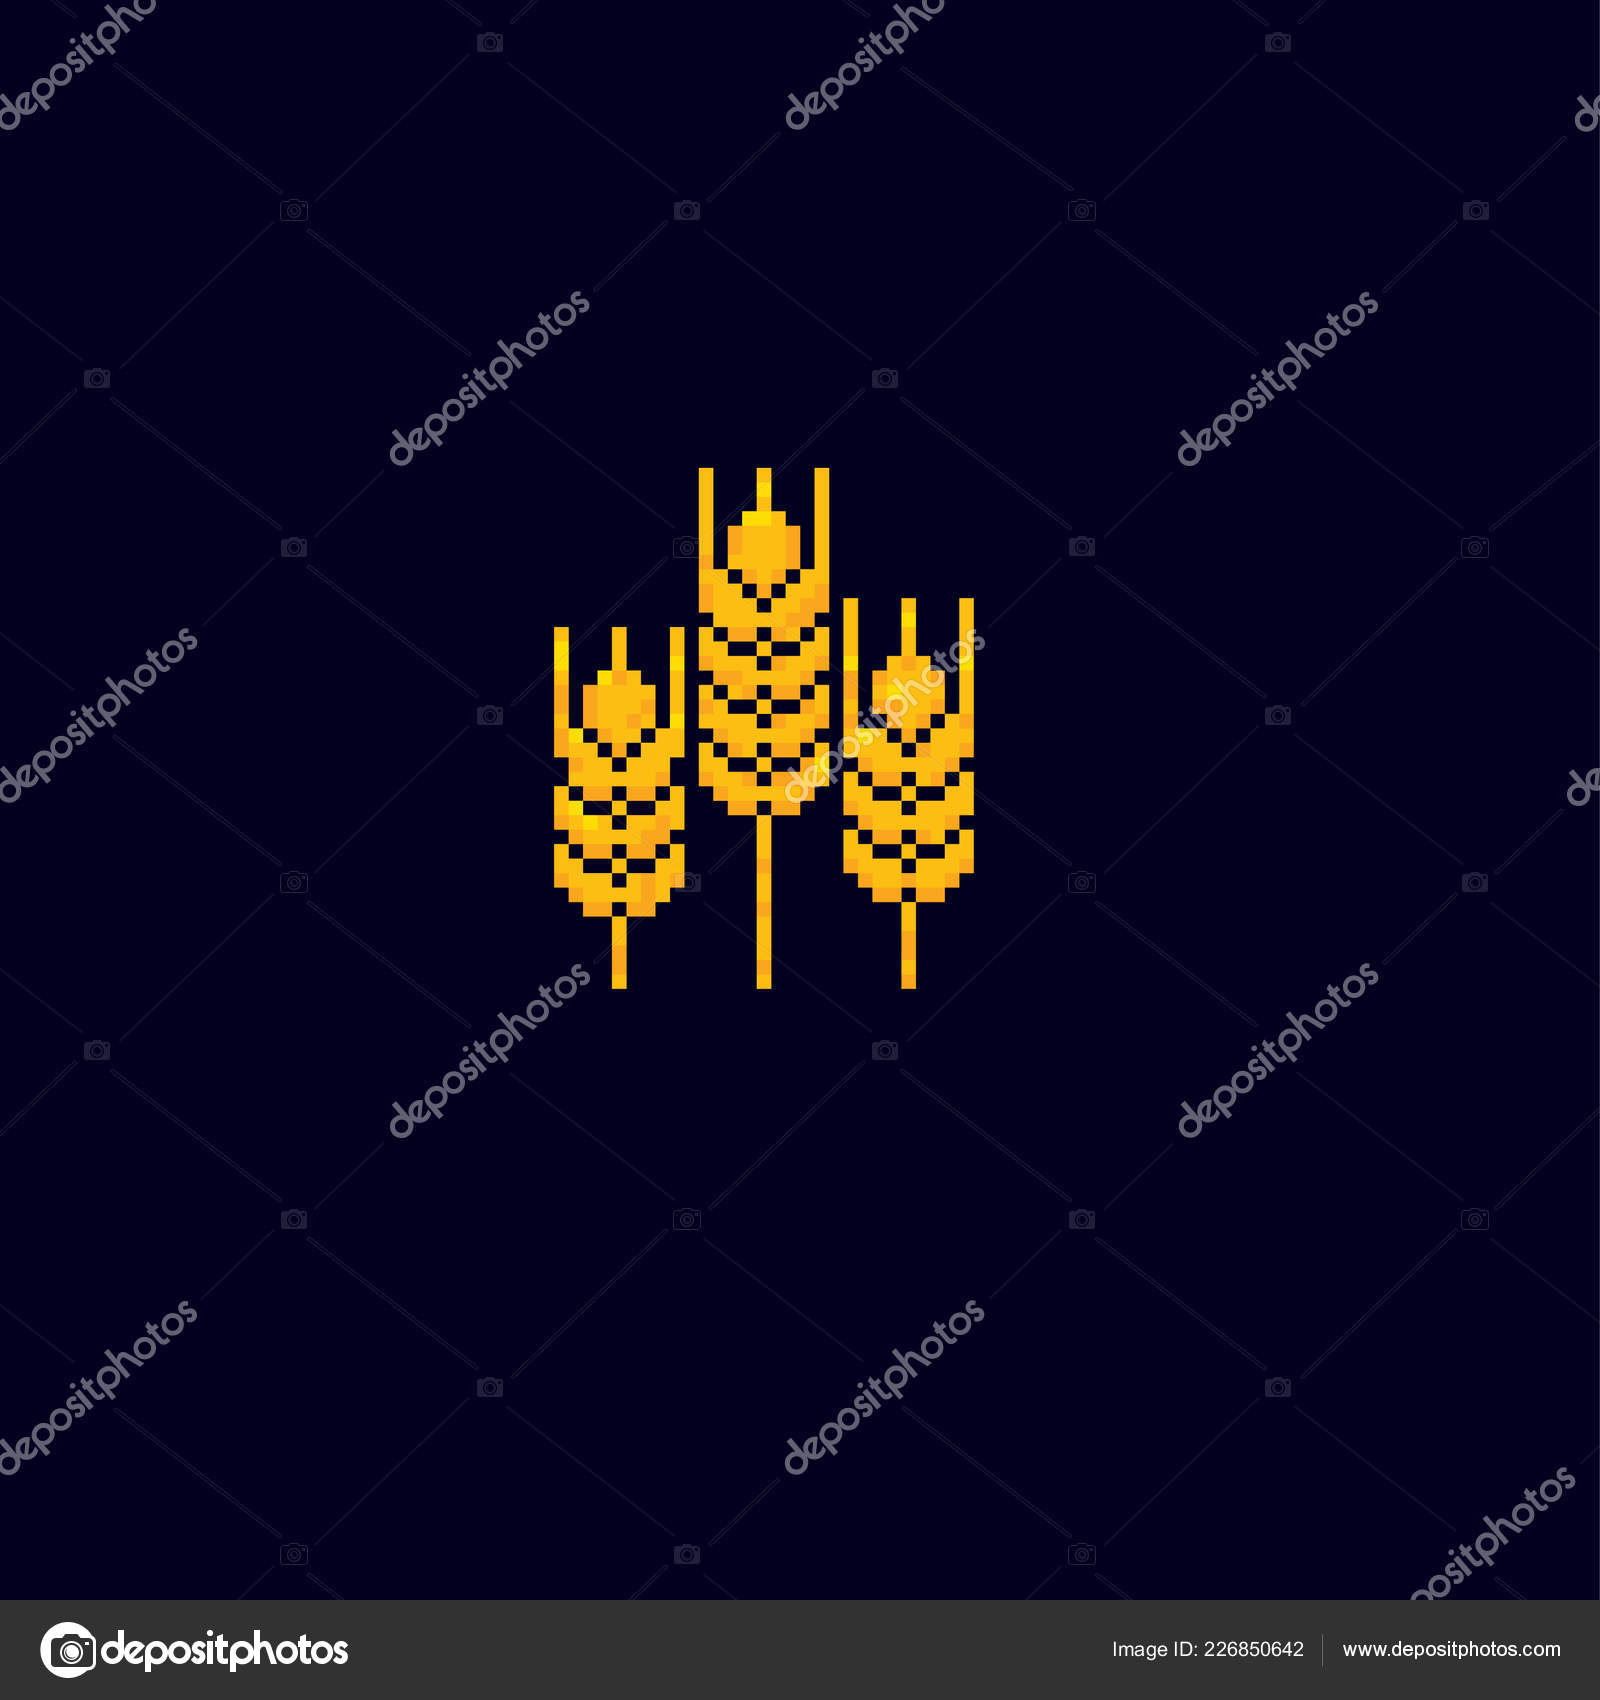 Spike of wheat  Pixel art  Old school computer graphic  Element